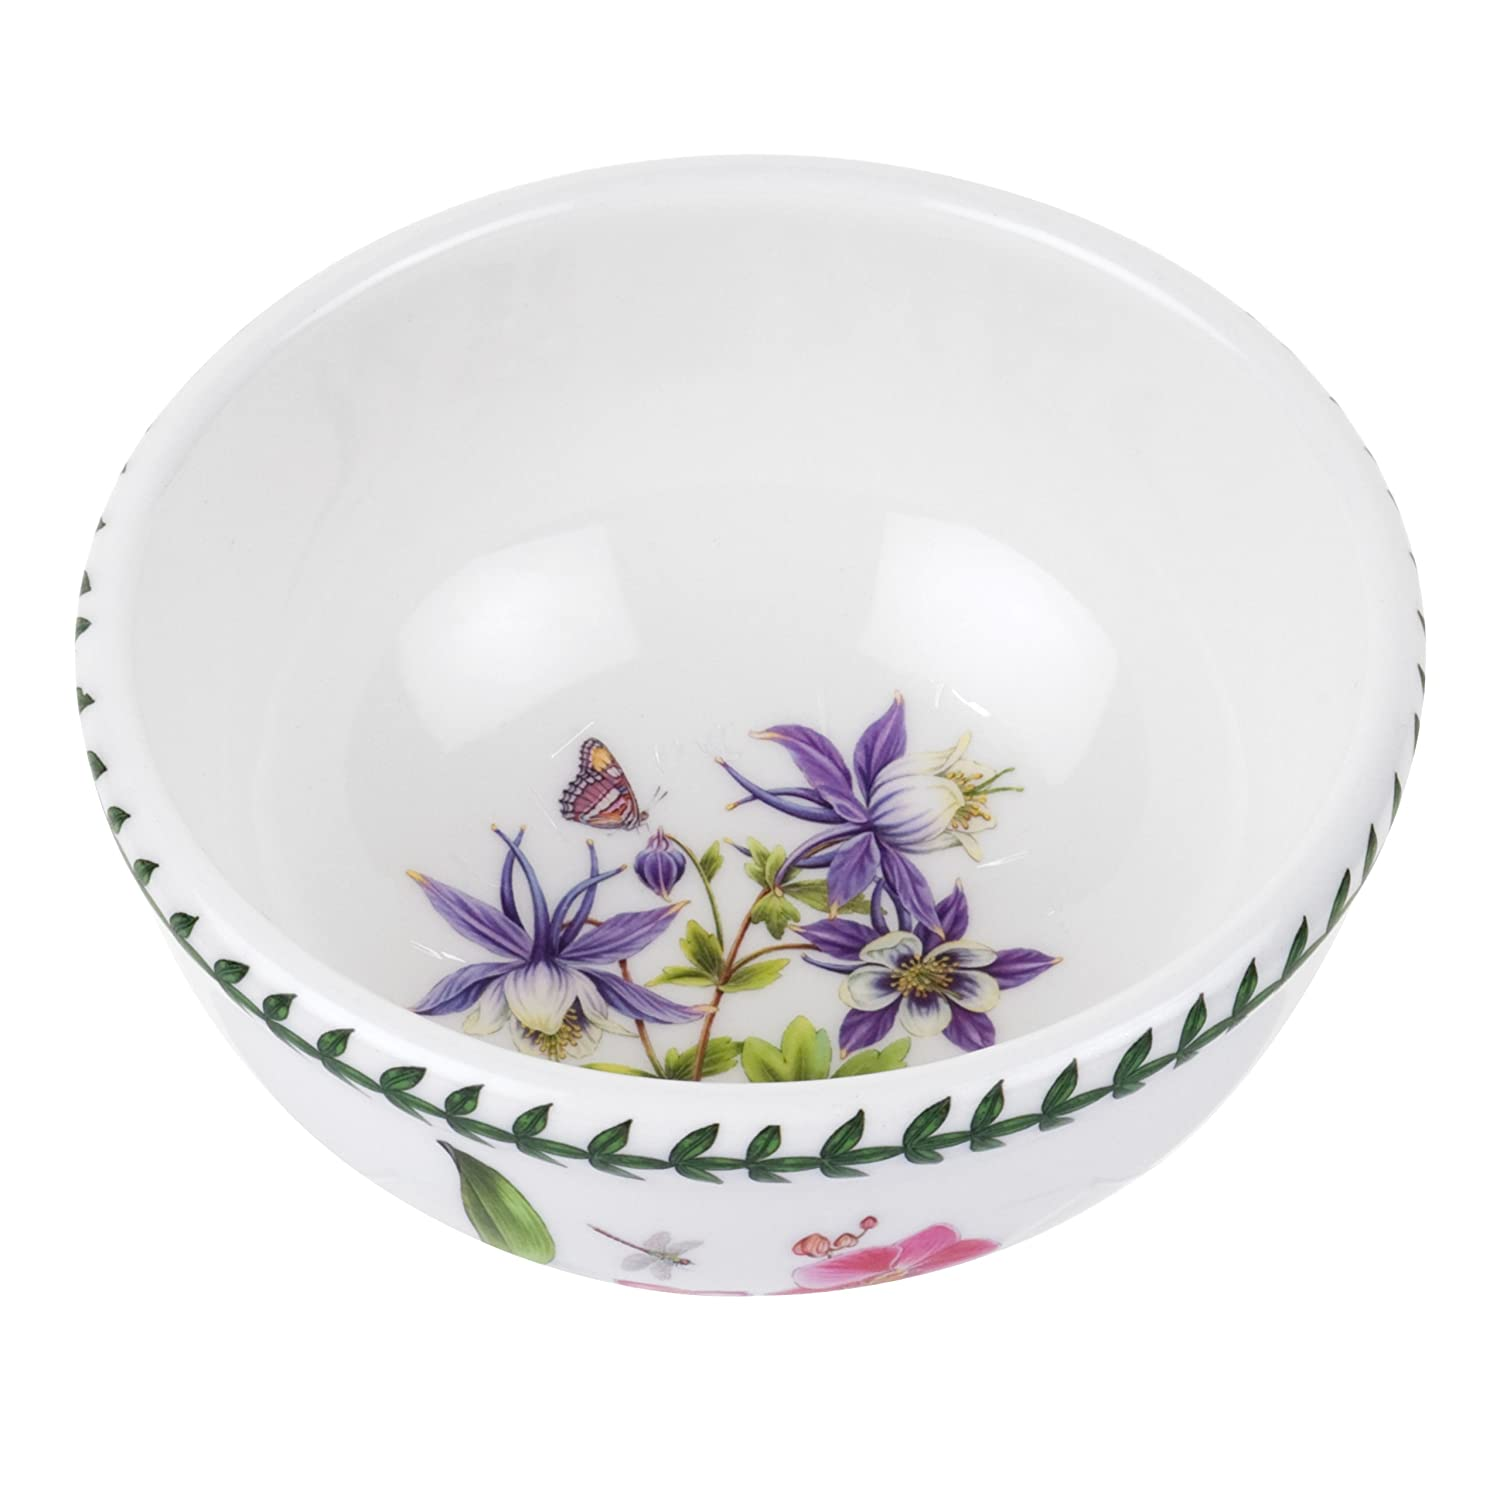 amazoncom portmeirion exotic botanic garden individual fruit salad bowl set with 6 assorted motifs kitchen dining